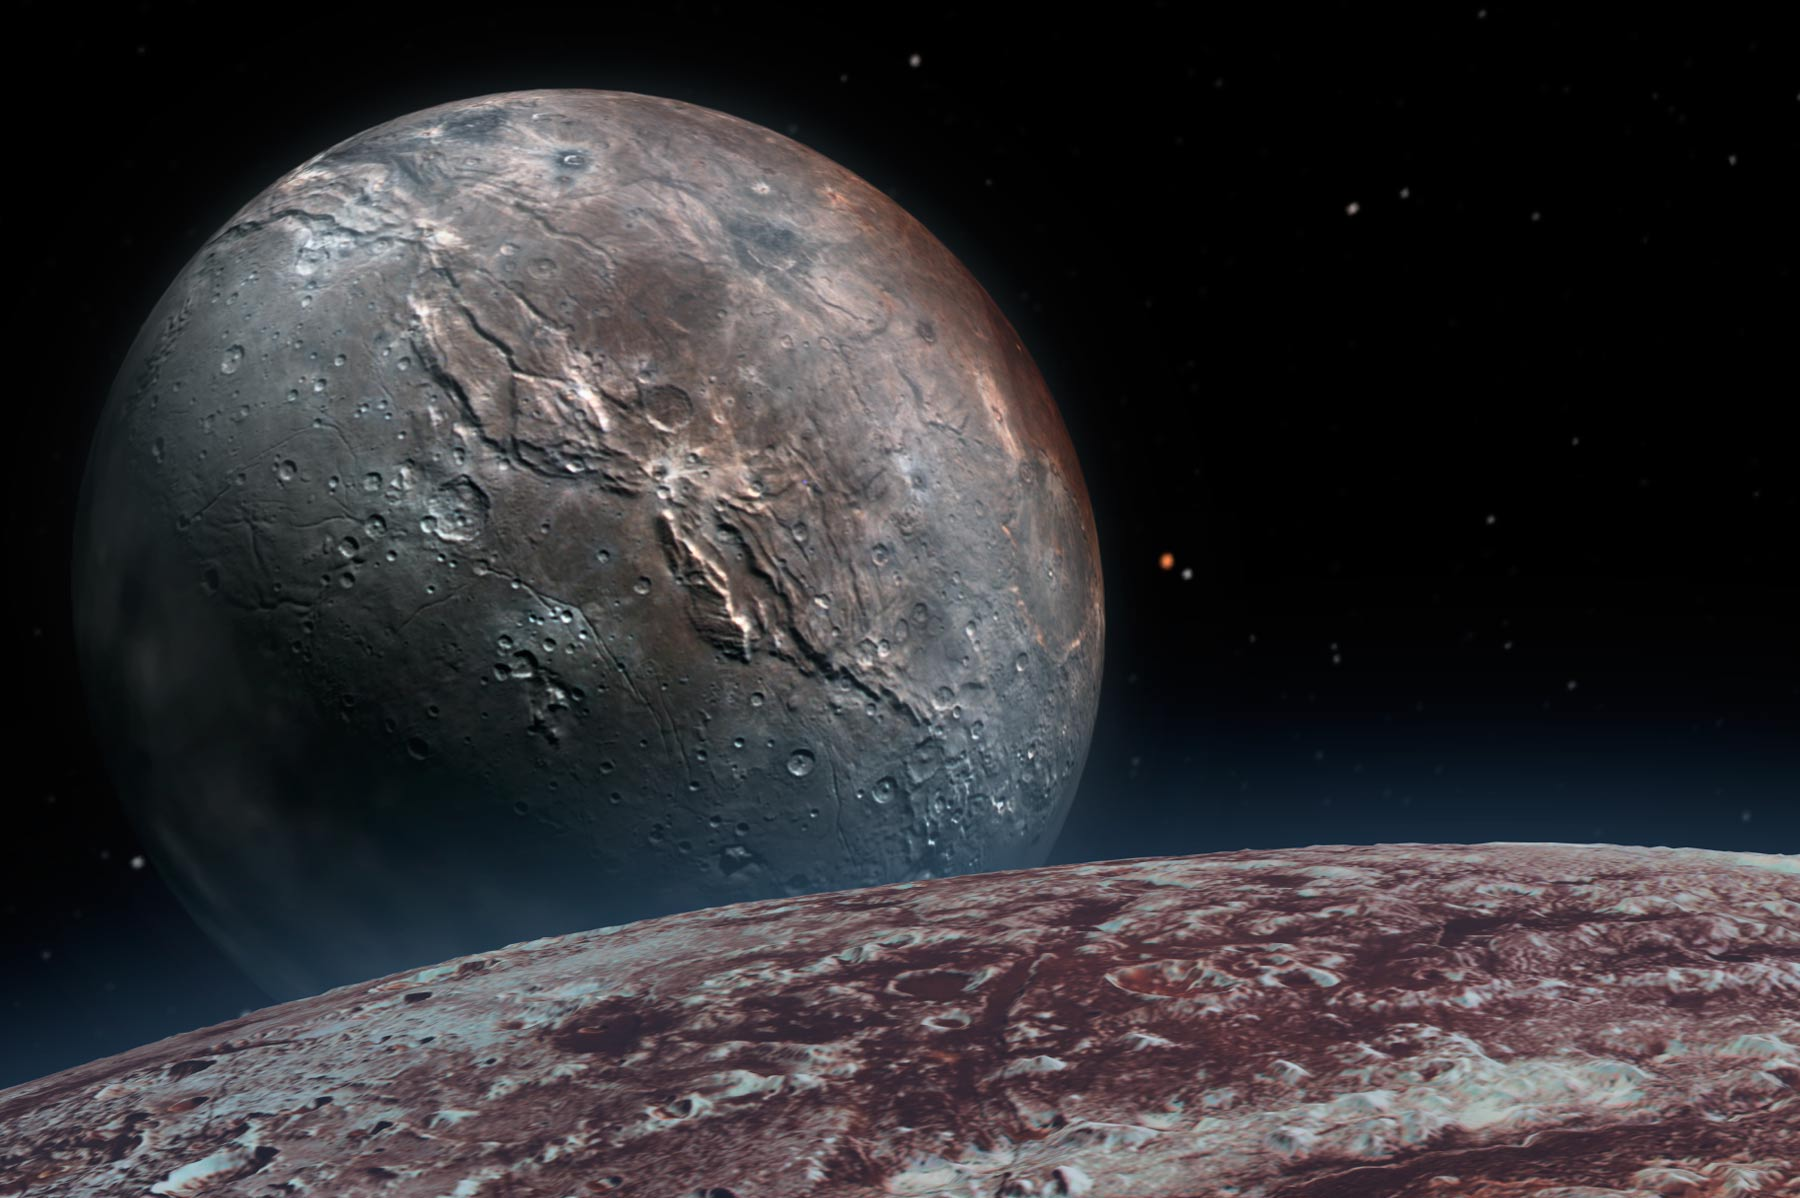 Pluto's pockmarked surface with the broad sphere of moon Charon on the horizon.